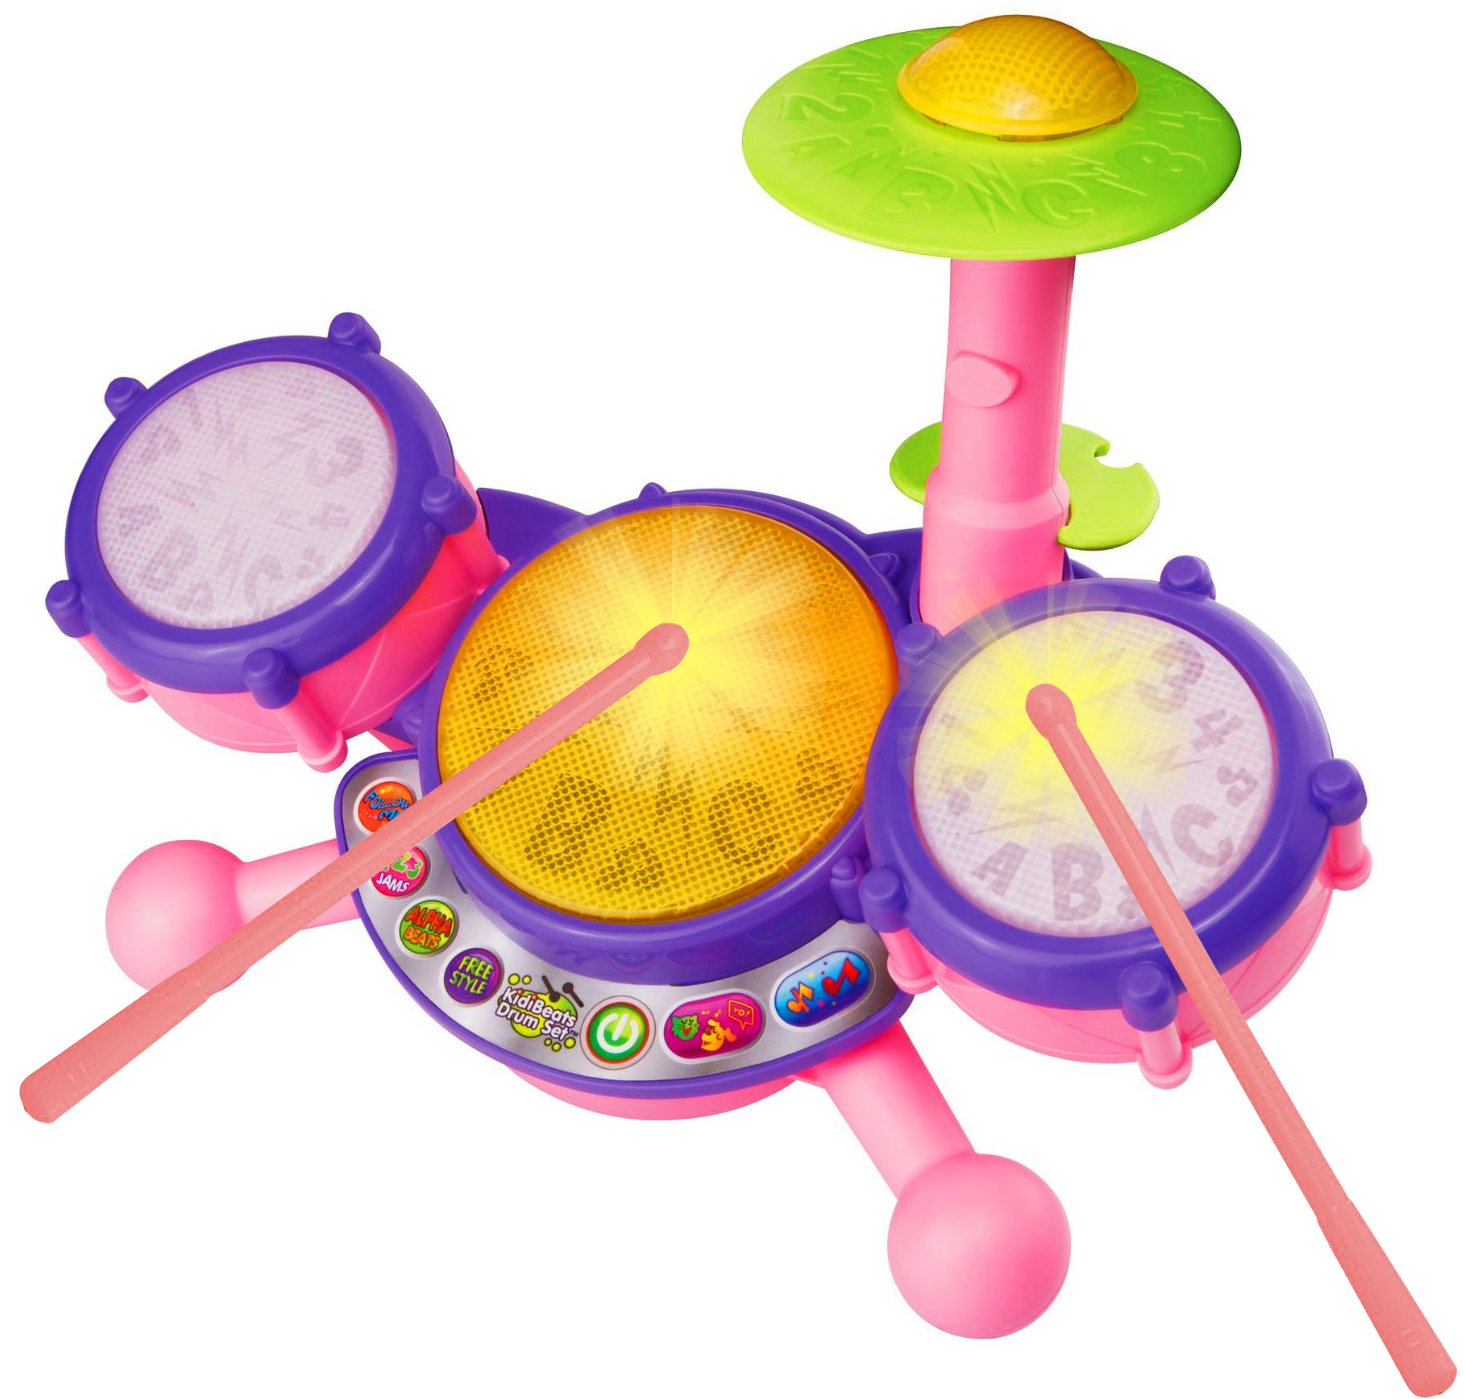 Vtech Kidibeats Drum Set  Pink  Online Exclusive